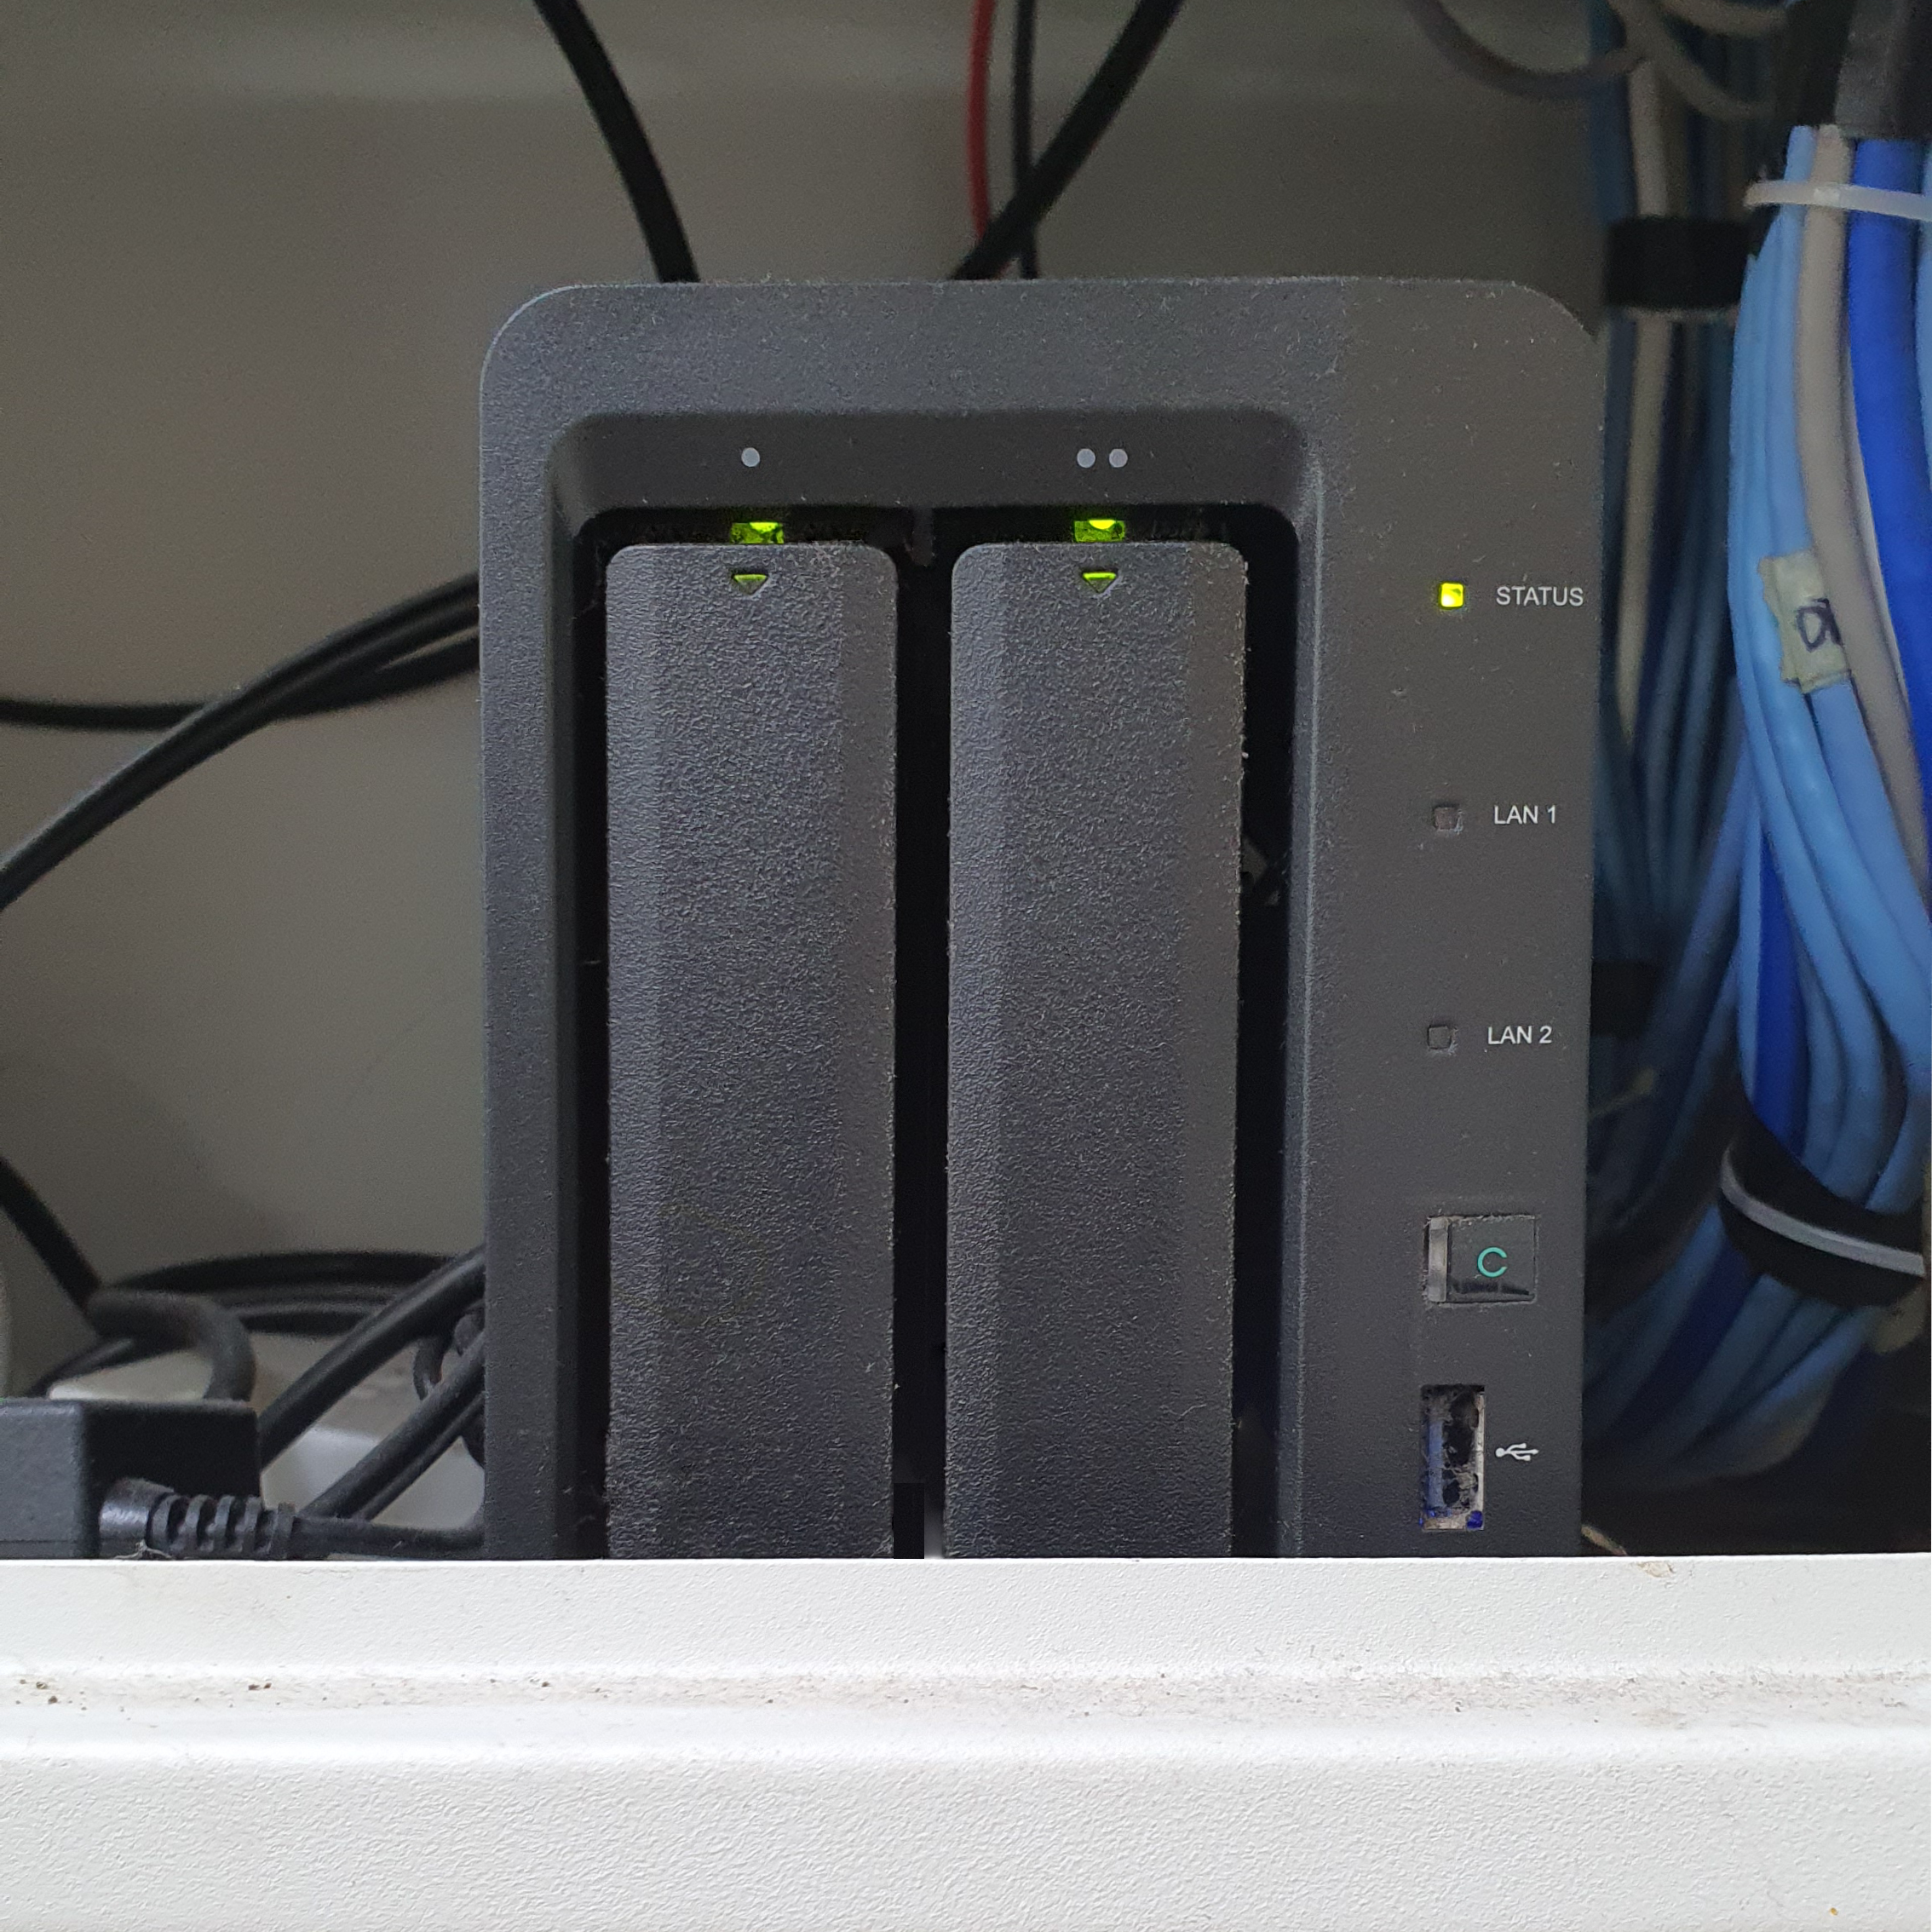 mns-mien-phi-kiem-tra-synology-cho-anh-dung-cong-ty-an-phat-01